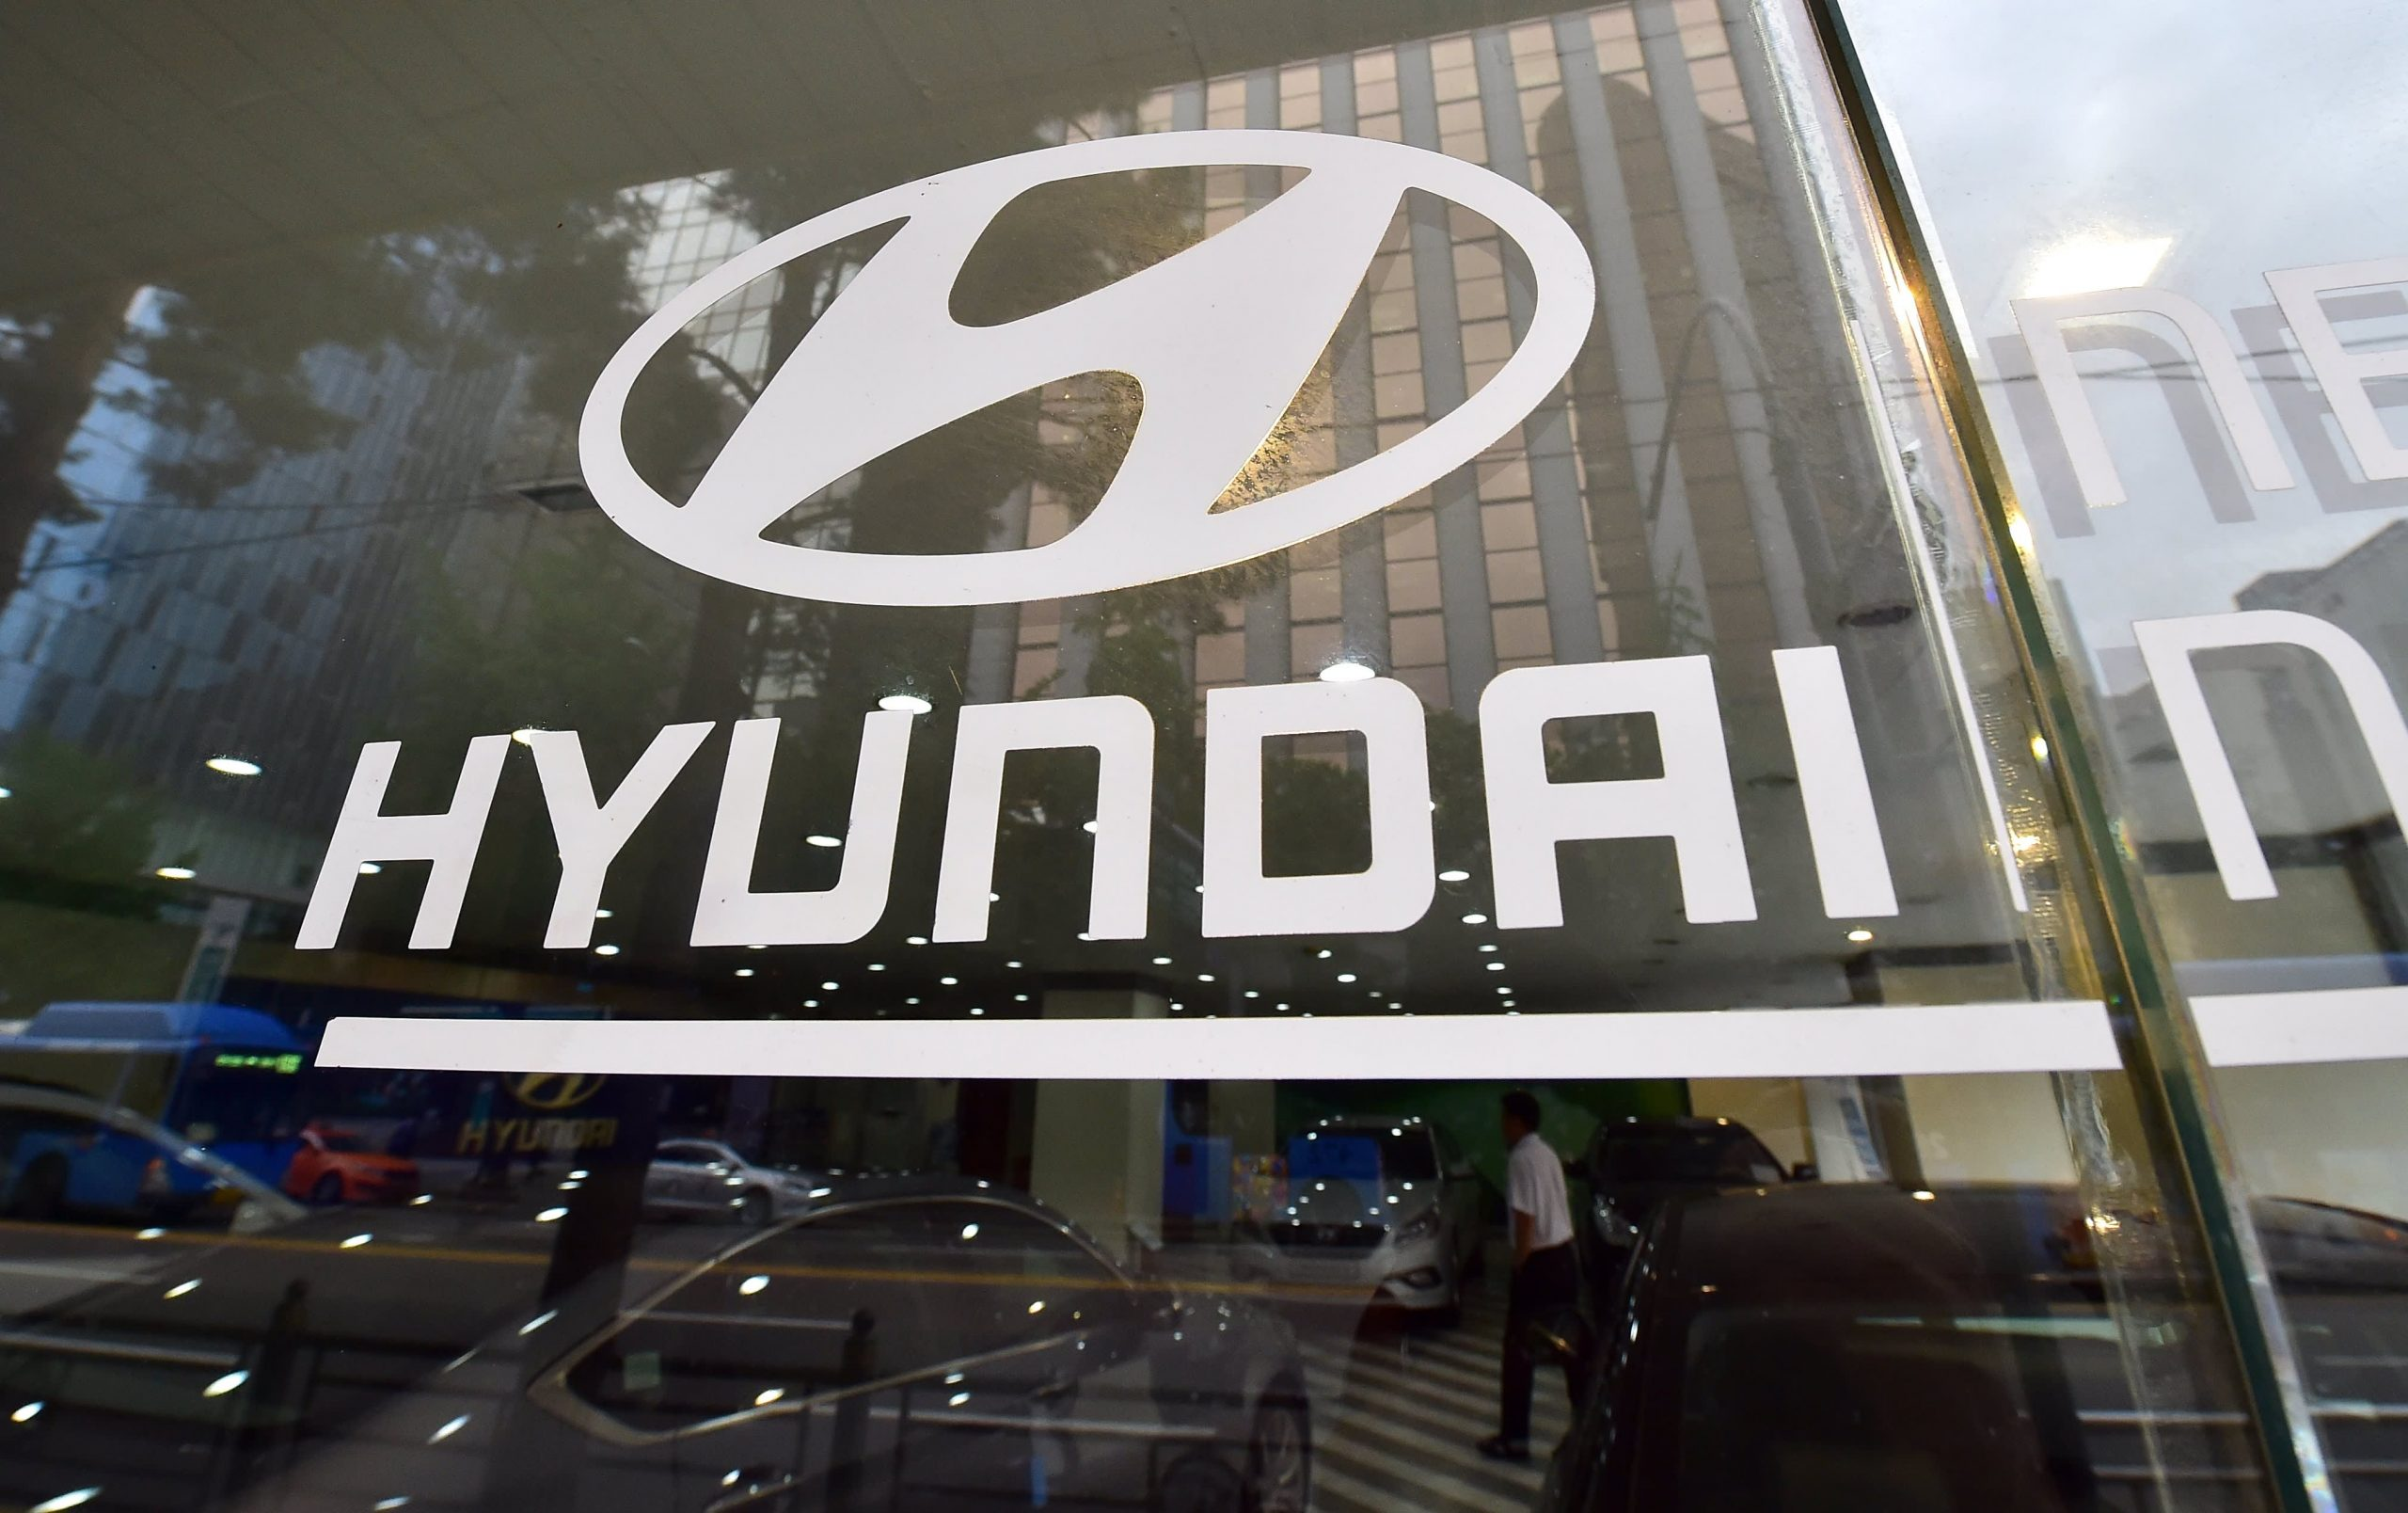 Hyundai, Kia shares tumble after automakers say they're not in talks with Apple to develop a car